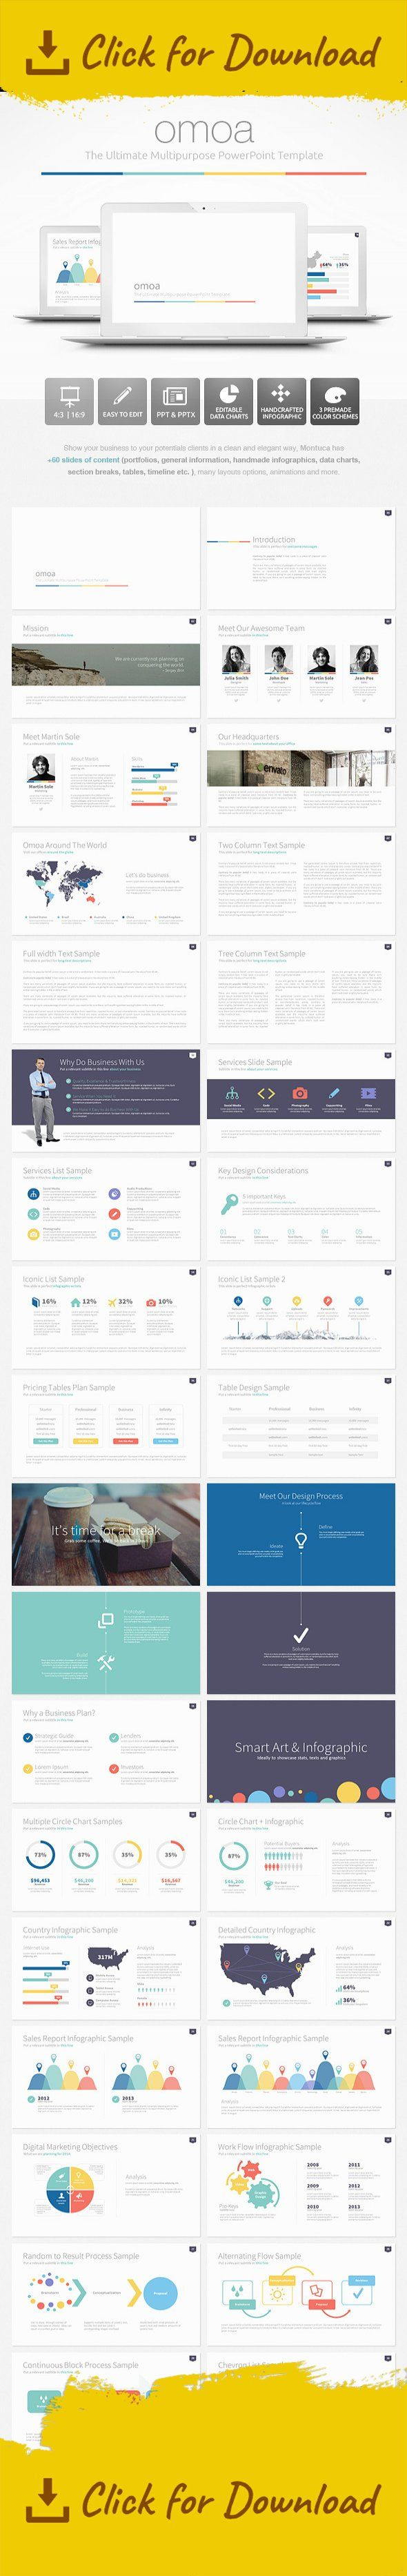 """Show your business to your potentials clients in a clean and elegant way, """"OMOA"""" has over 60 slides of content. Easy to change colors, modify shapes, texts, charts. All shapes are editable via PowerPoint.This is a handcrafted presentation, not based on Master Slides.   3 Premade color schemes are included: Red, Blue and a colored version (""""Maya"""" a custom MS-office color scheme for Omoa)      Features:  6 PPTX files (3 (4:3), 3 (16:9)) 6 PPT files (3(4:3), 3 (16:9)) 2 PSD (Phone Mo..."""